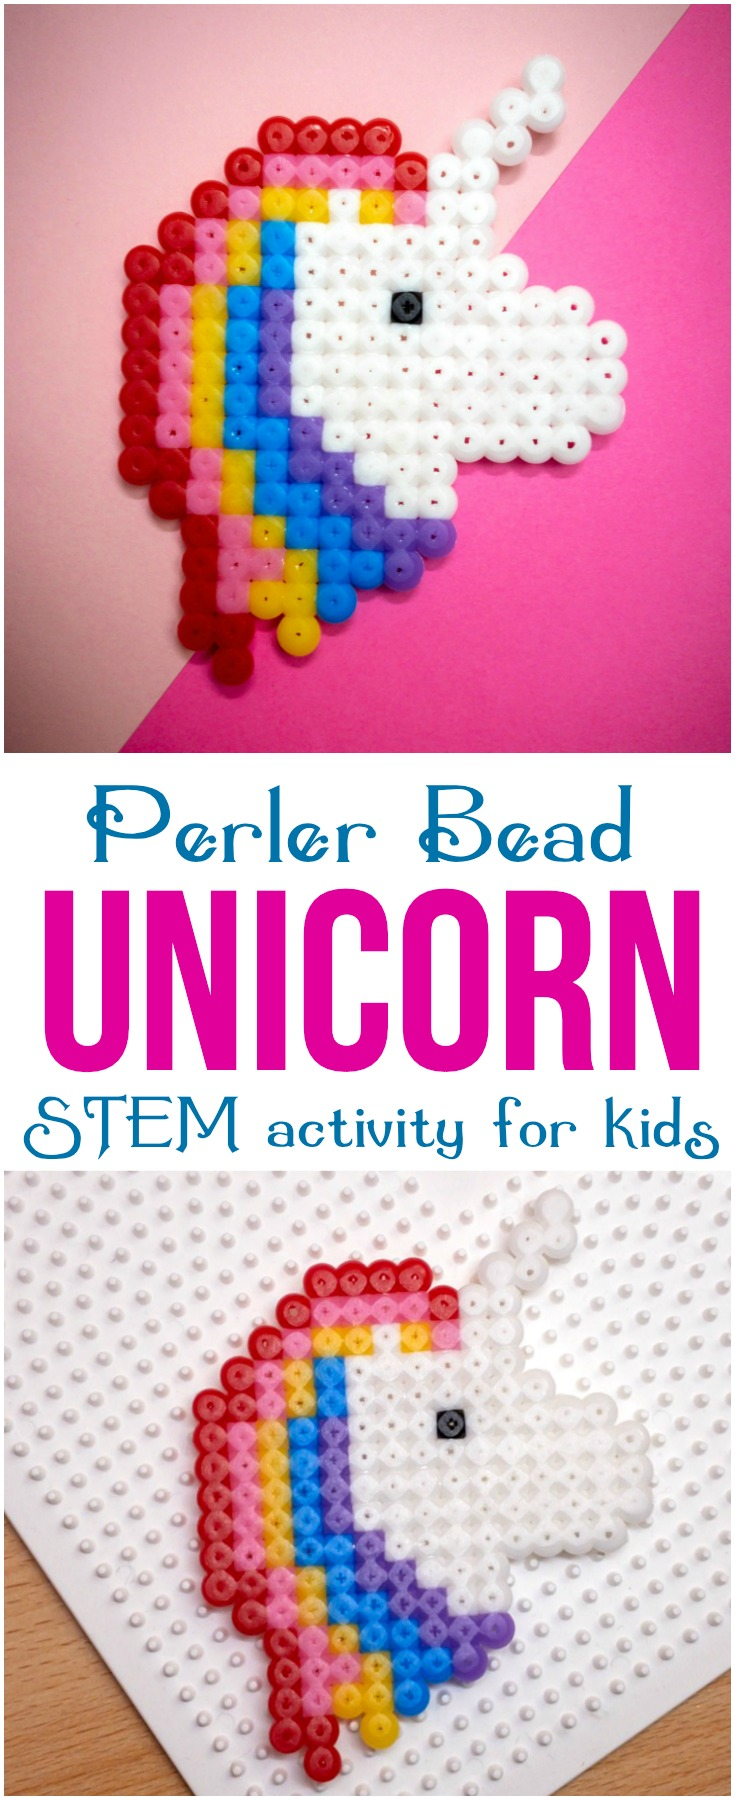 This perler bead unicorn is a fun, cute project that will help kids develop fine motor skills, patience and artistic design! #unicorn #perlerbead #kidscraft #kids #bead #beaddproject #STEM